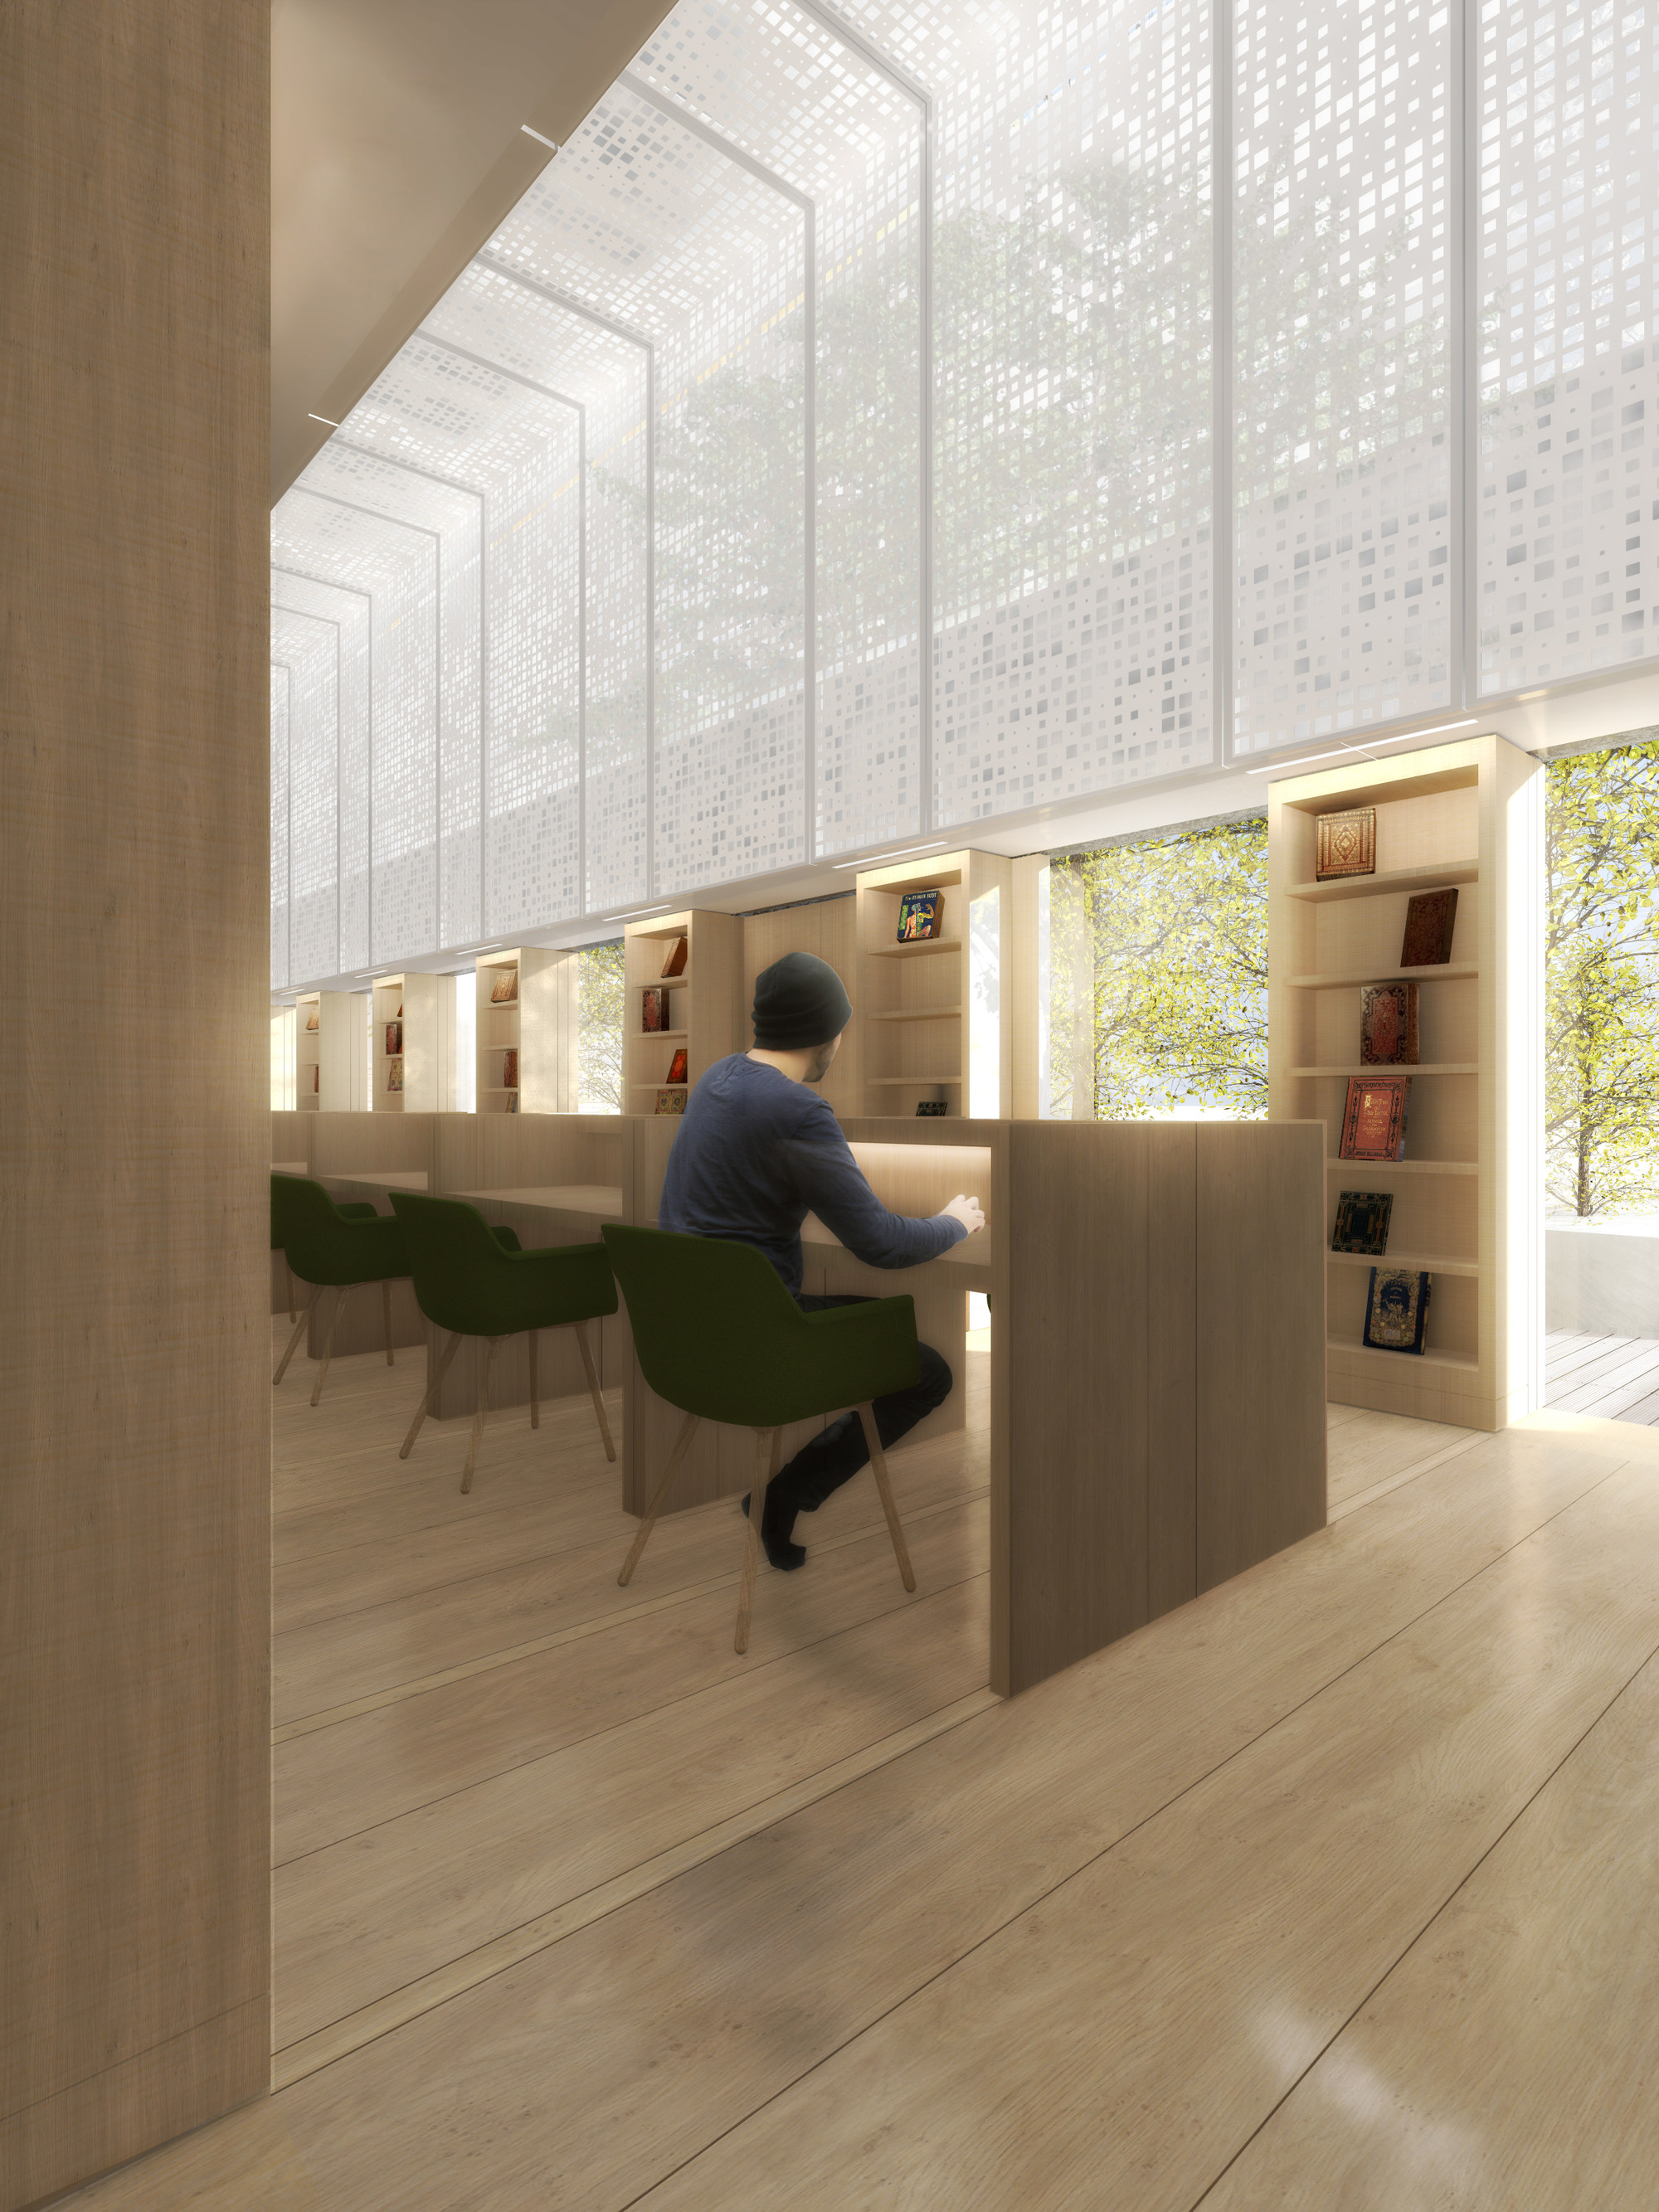 Coffey Architects Design New Research Center for Londons Science